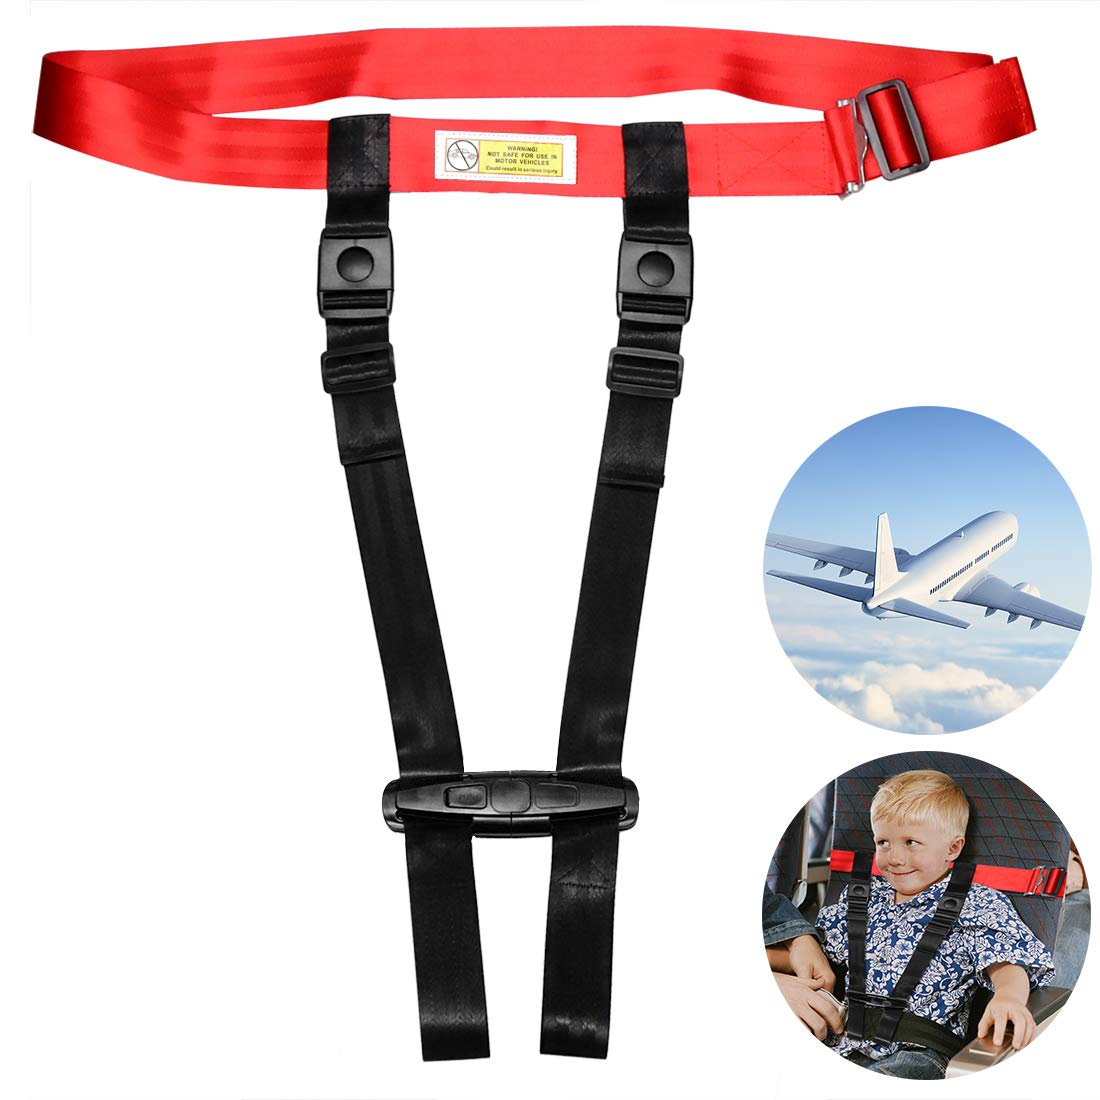 Child Airplane Travel Harness Safety Clip Strap Restraint System for Baby, Toddlers & Kids- for Airplane Travel Use Only by Together-life (Image #1)